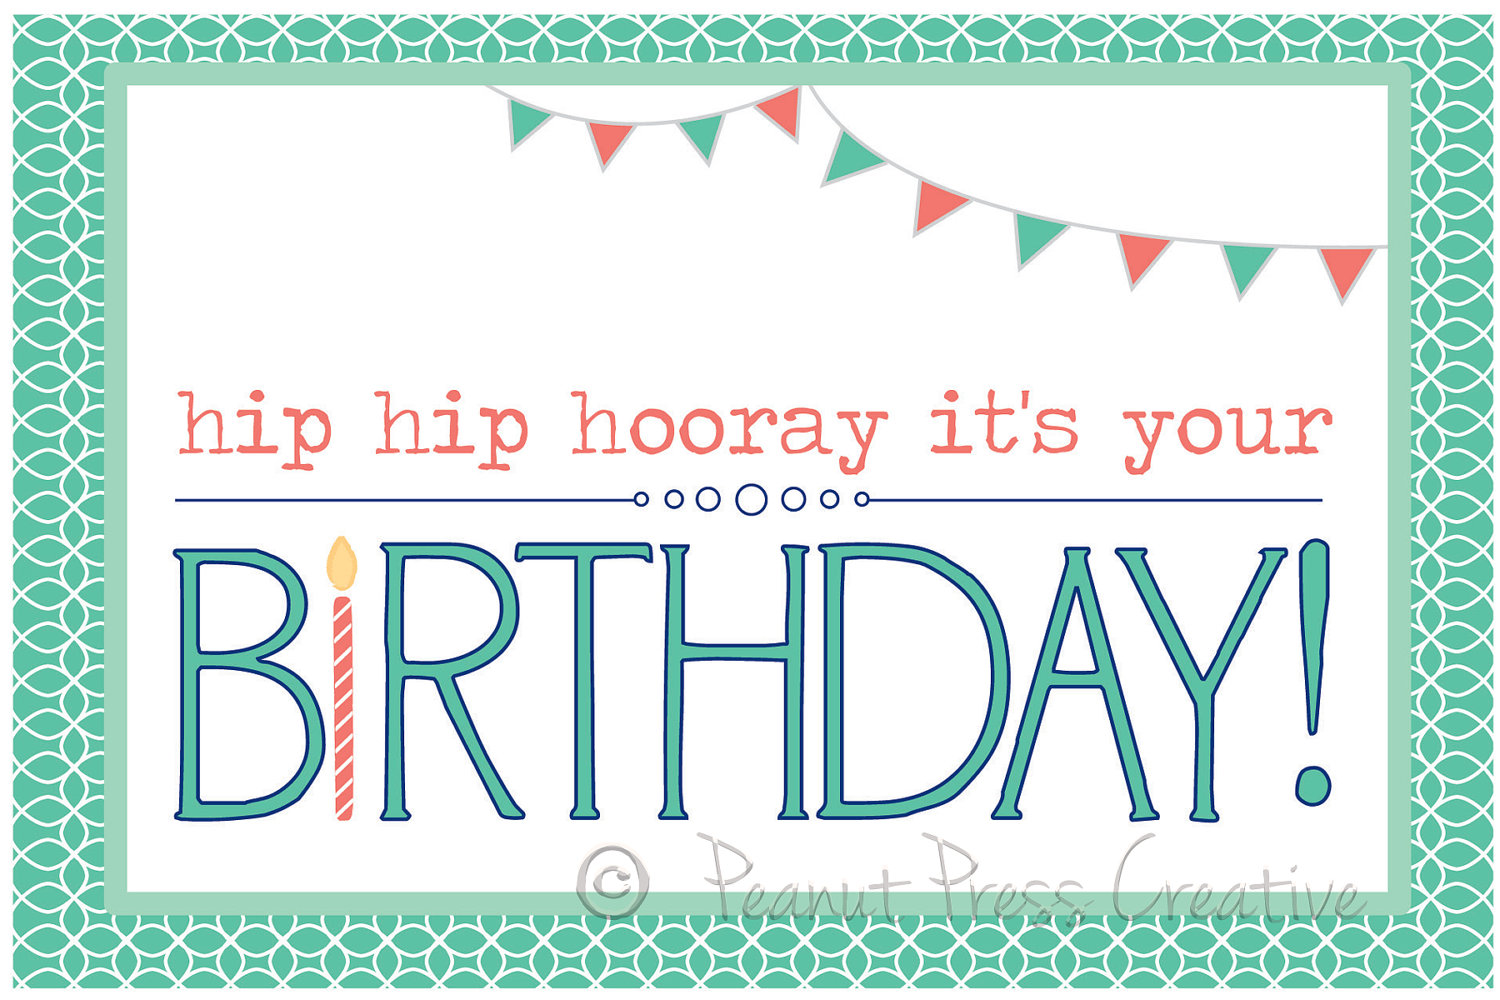 free birthday cards no sign up ; a8aa1f1ddf023114504731d55a005ebd